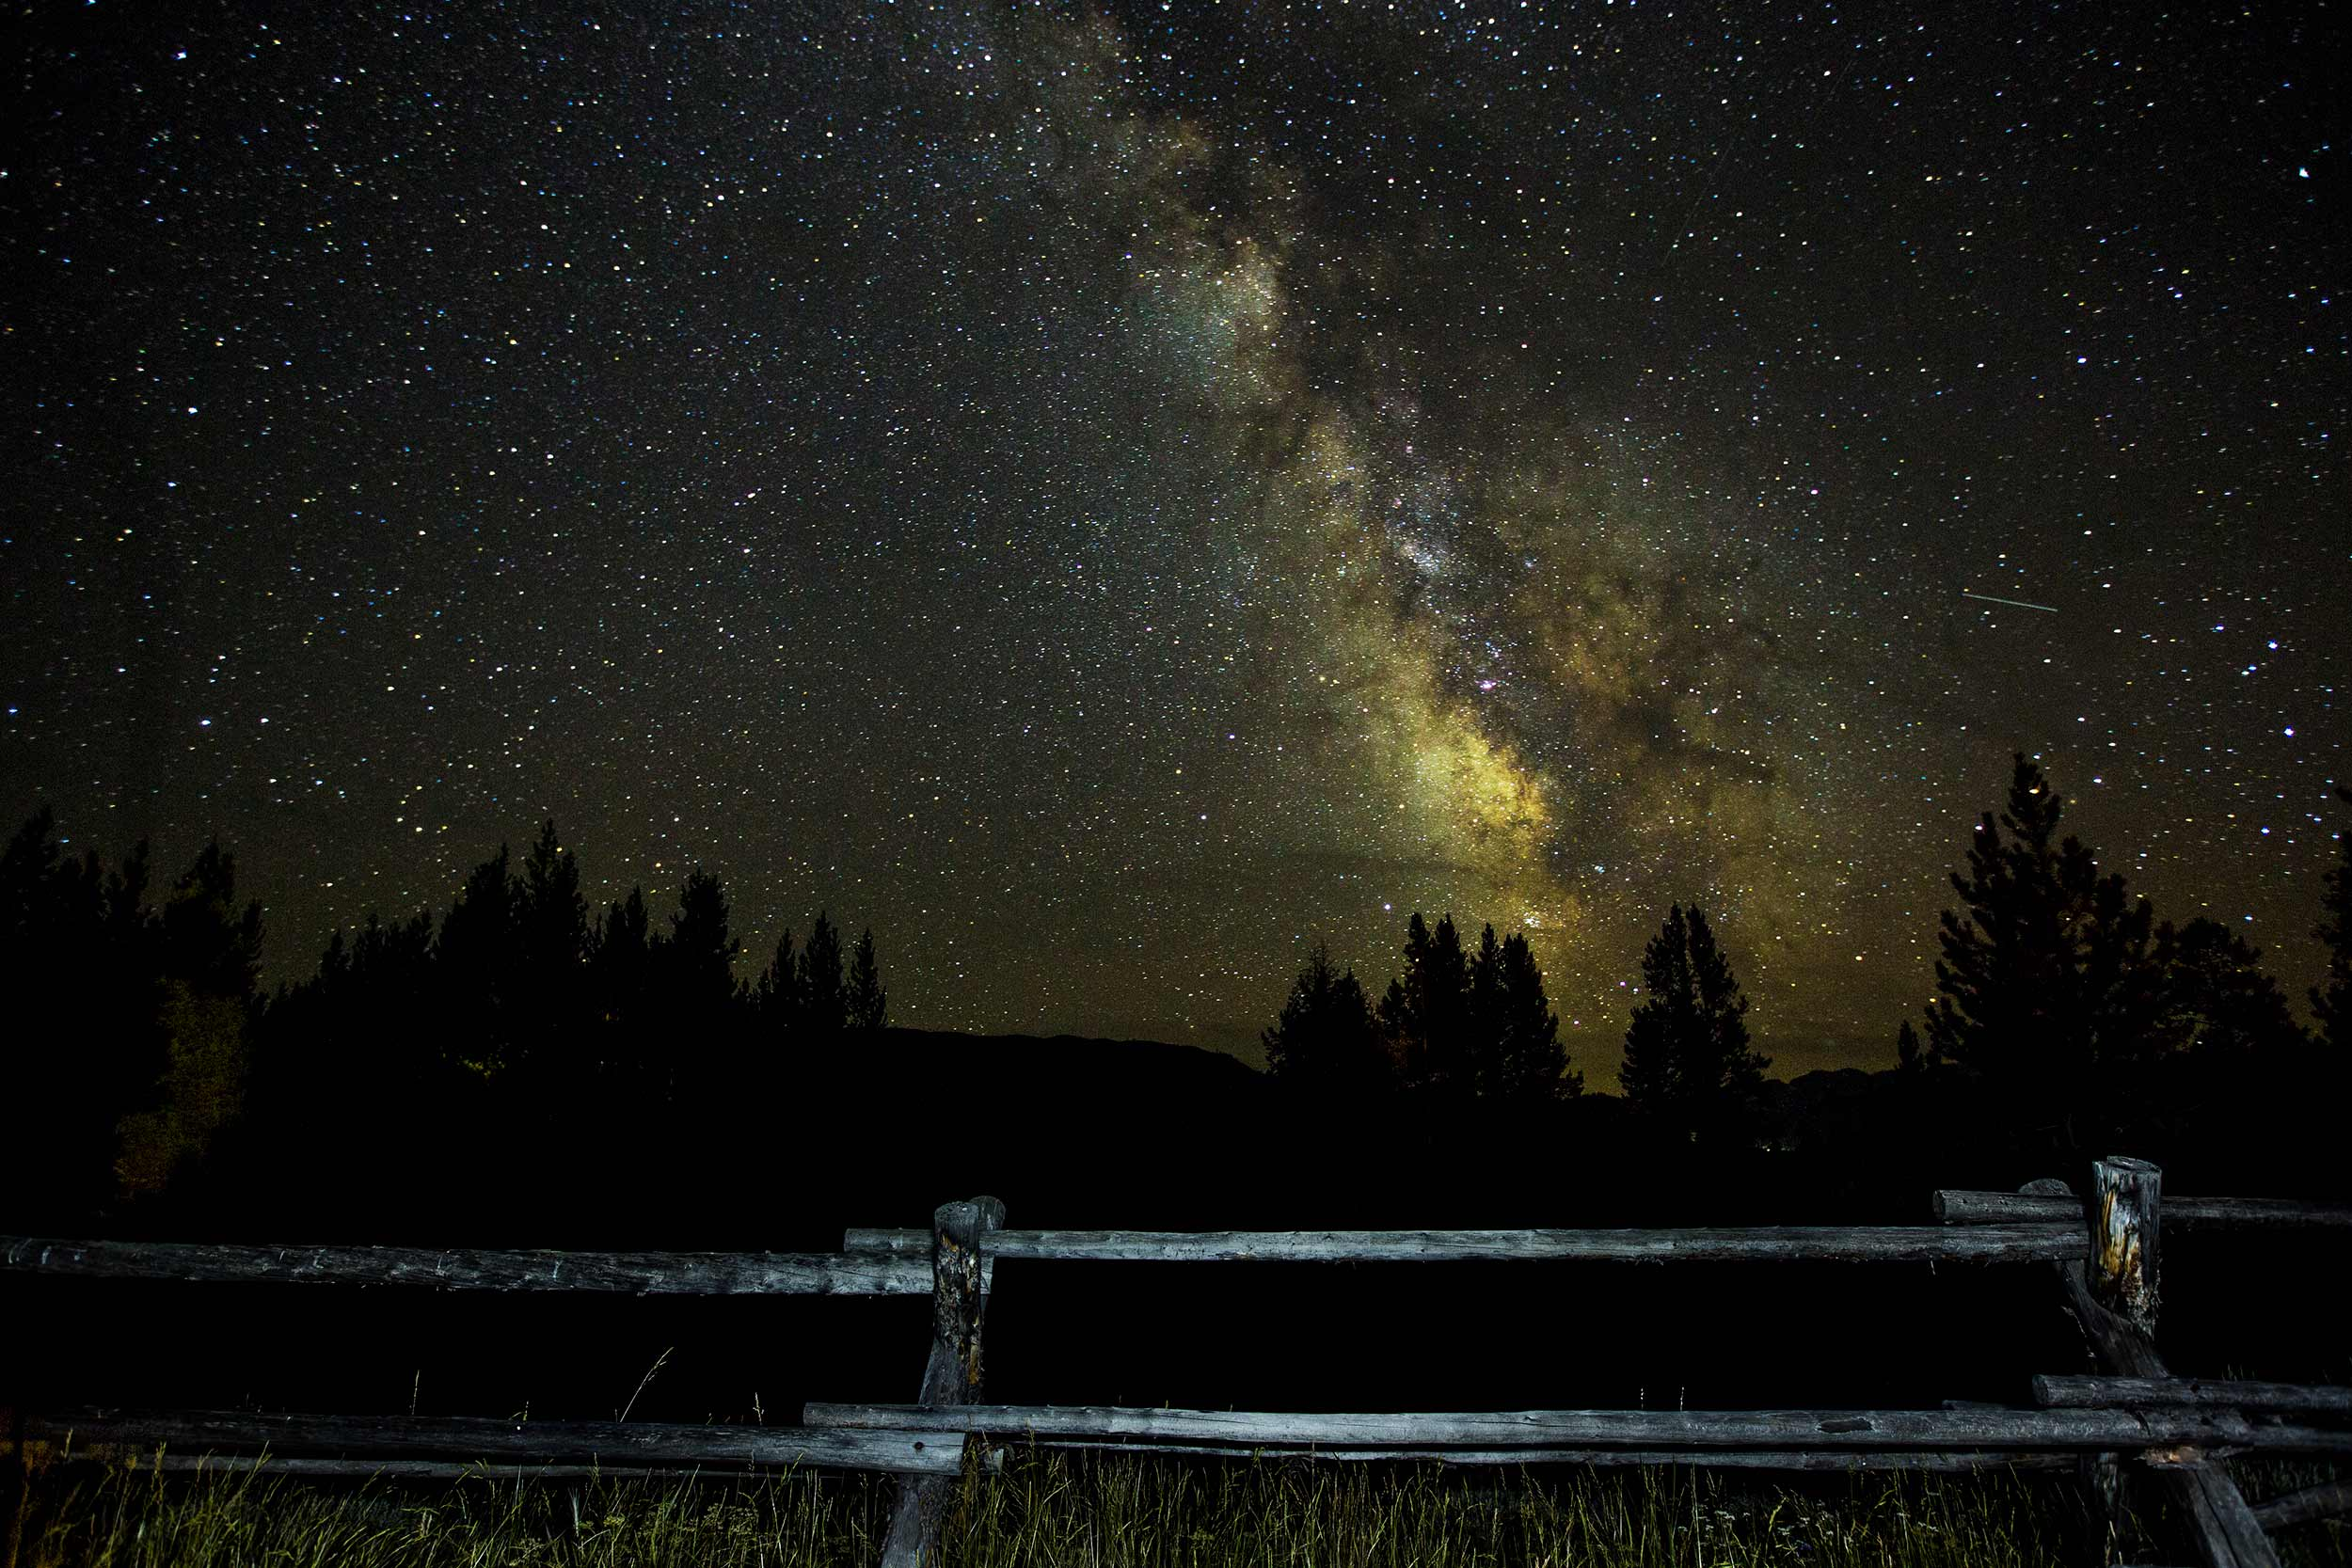 Stargazing in Jackson Hole - Milky Way